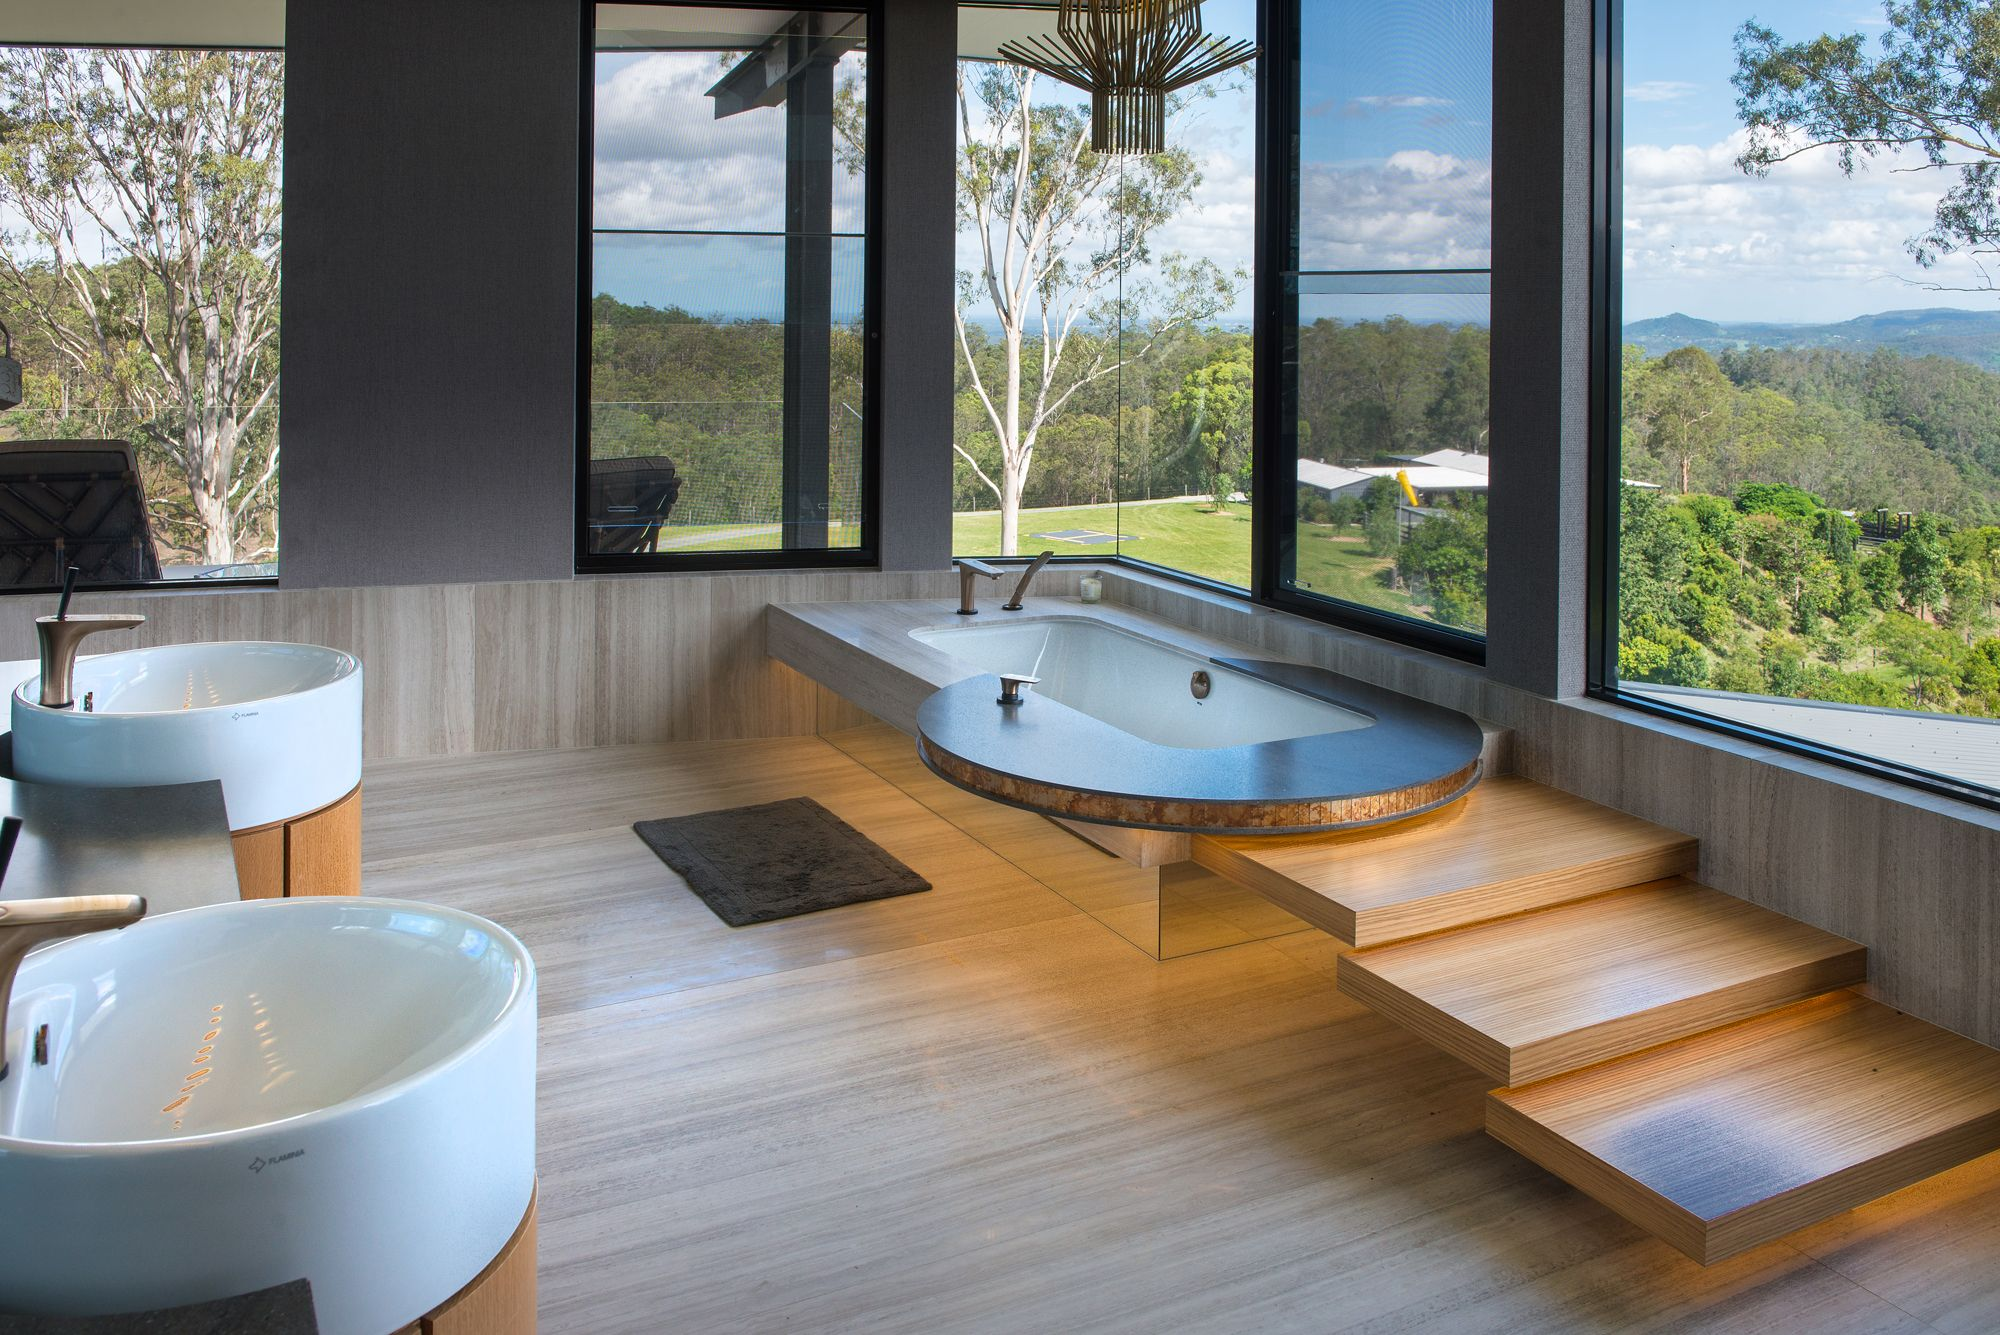 Luxurious bathing area overlooking greenery – and a rim-mounted bath ...